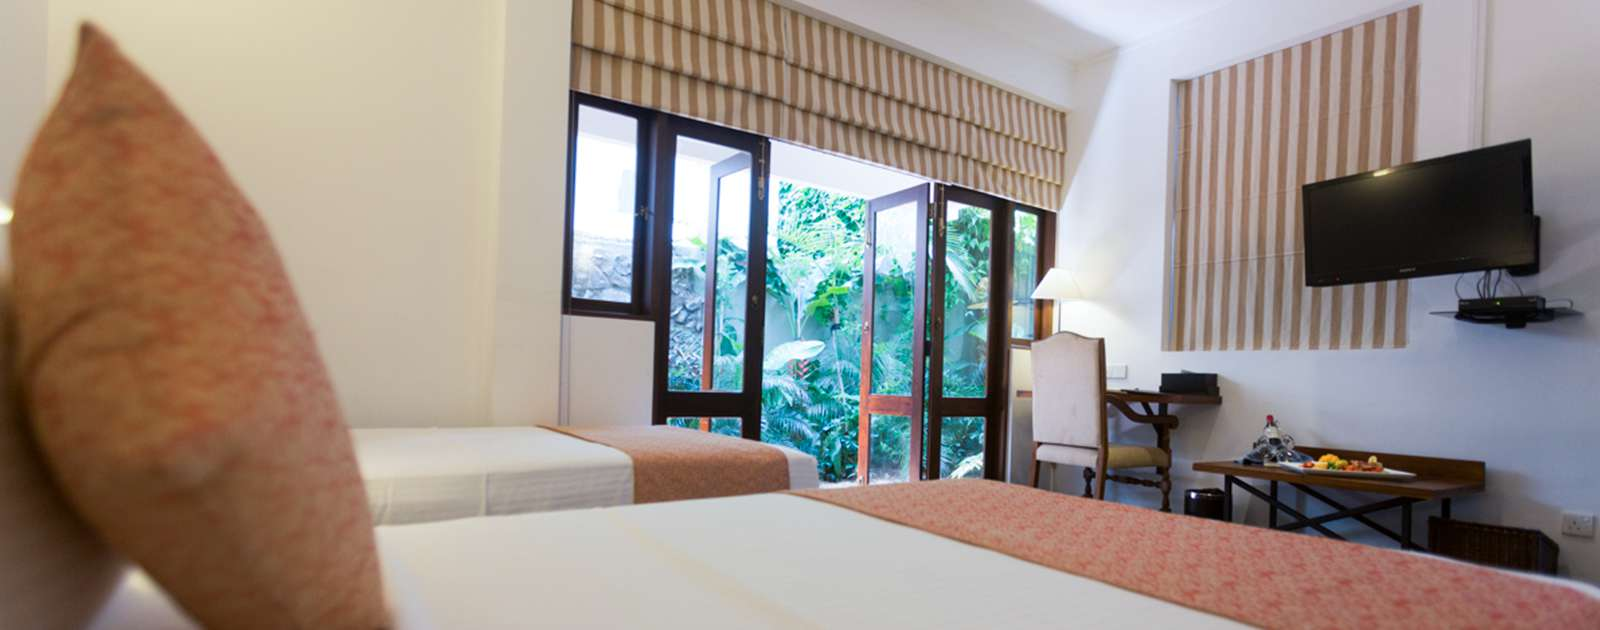 Twin bed room in Colombo Courtyard